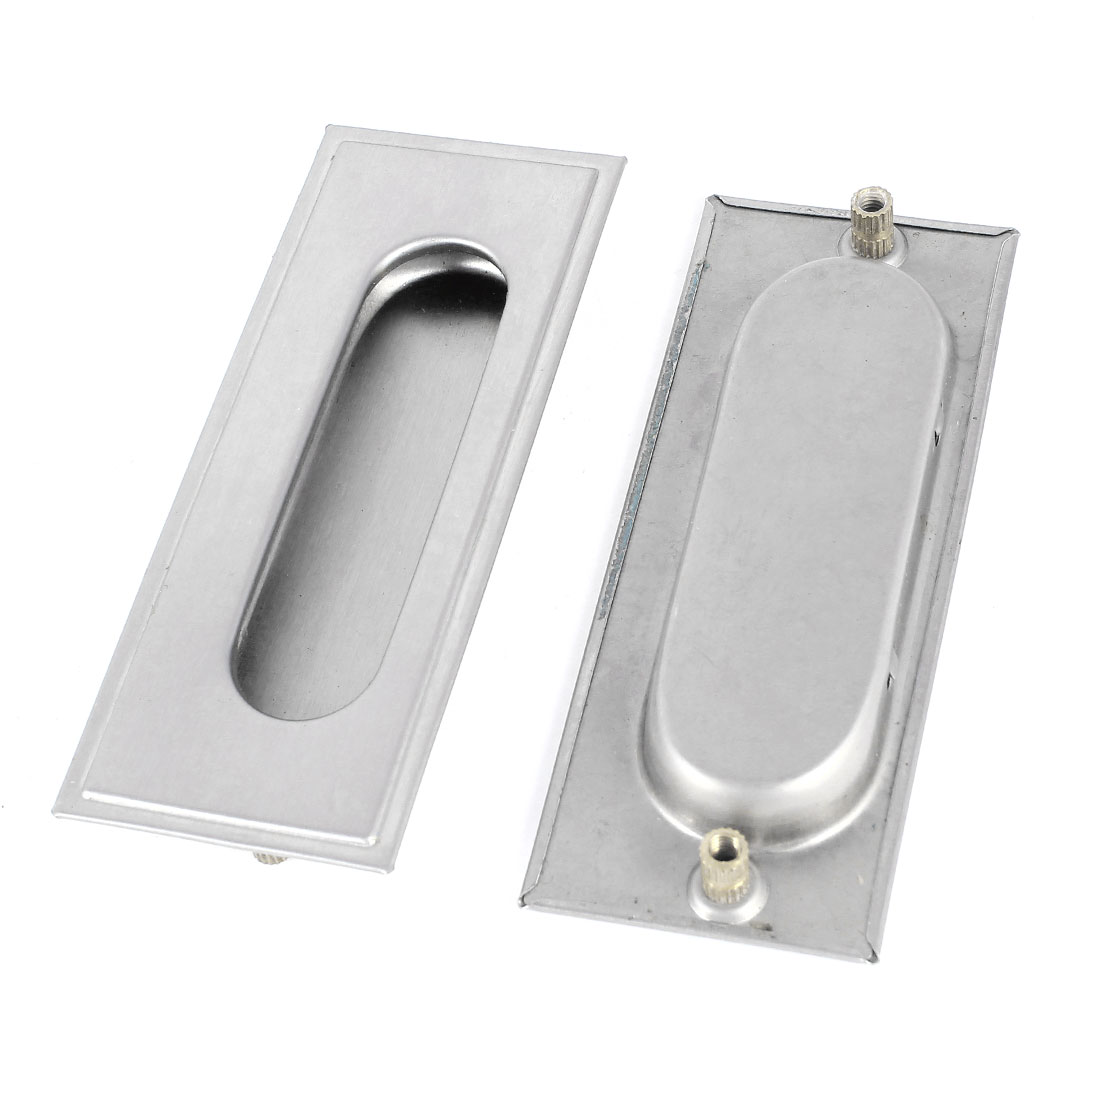 2 Pcs Cabinet Drawer Rectangle Flush Type Pull Concealable Handle Silver Tone 110mmx40mm